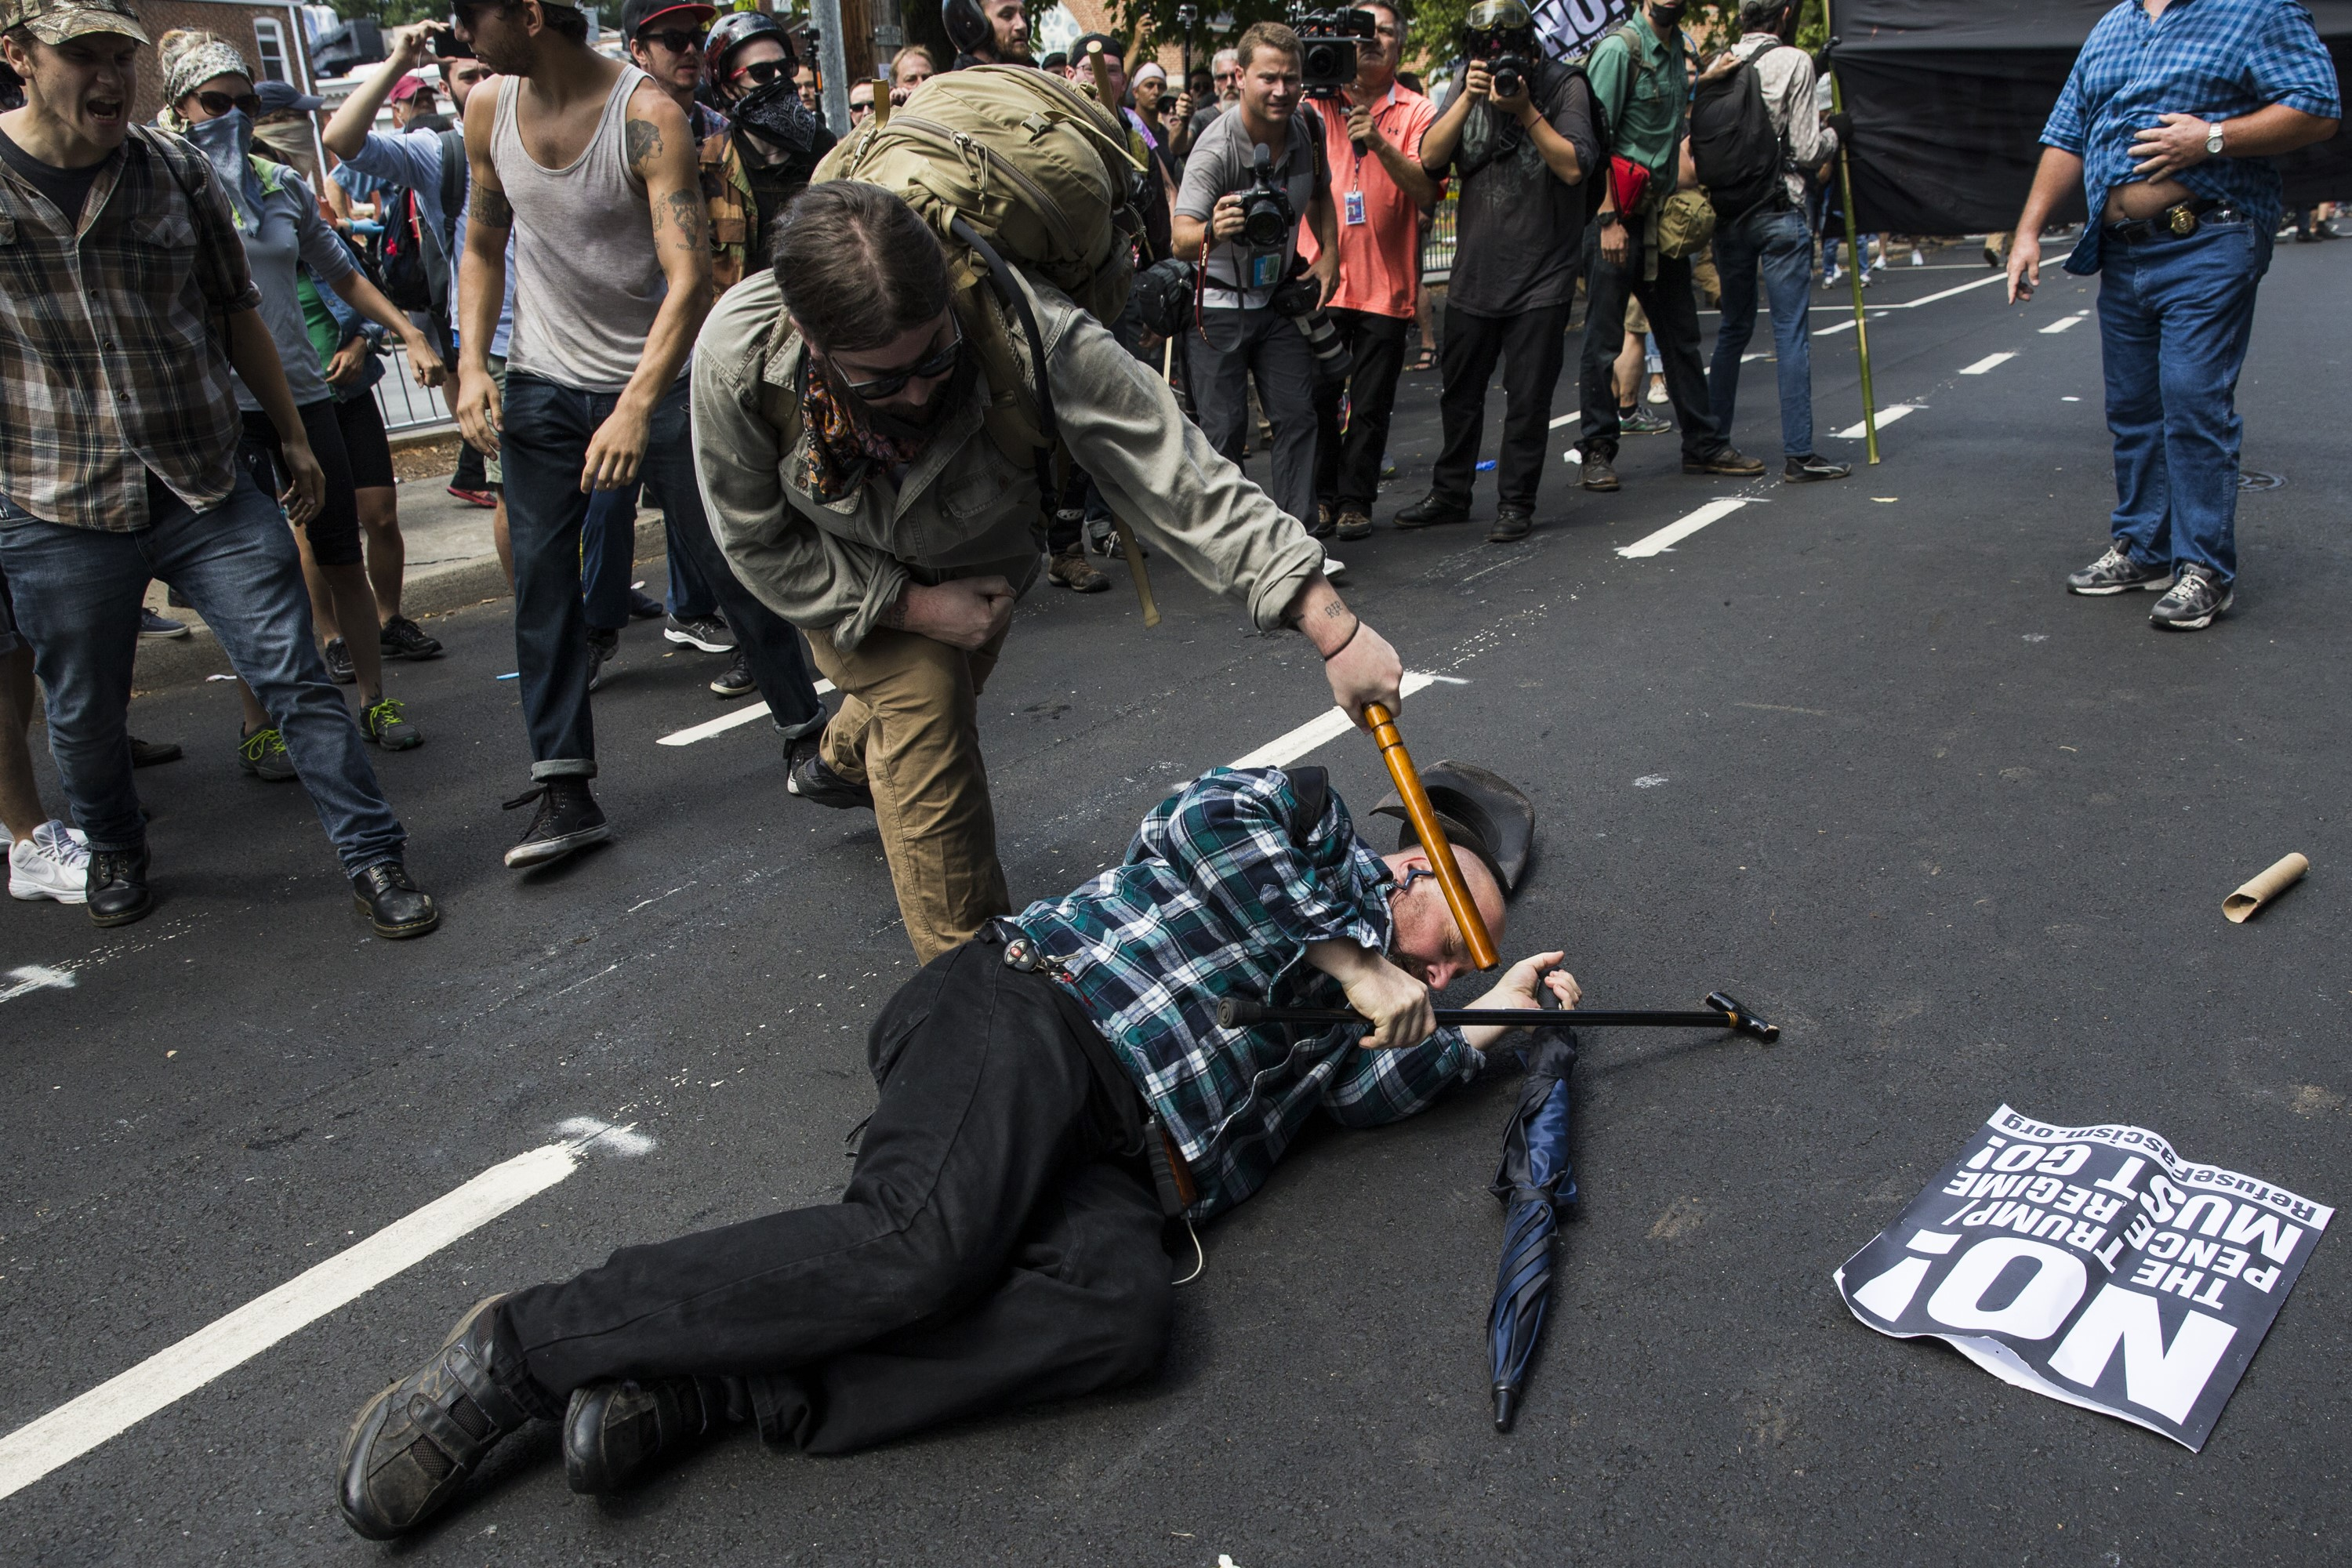 A counter protester strikes a White Nationalist with a baton during clashes at Emancipation Park where the White Nationalists are protesting the removal of the Robert E. Lee monument in Charlottesville, Va., USA on August 12, 2017.